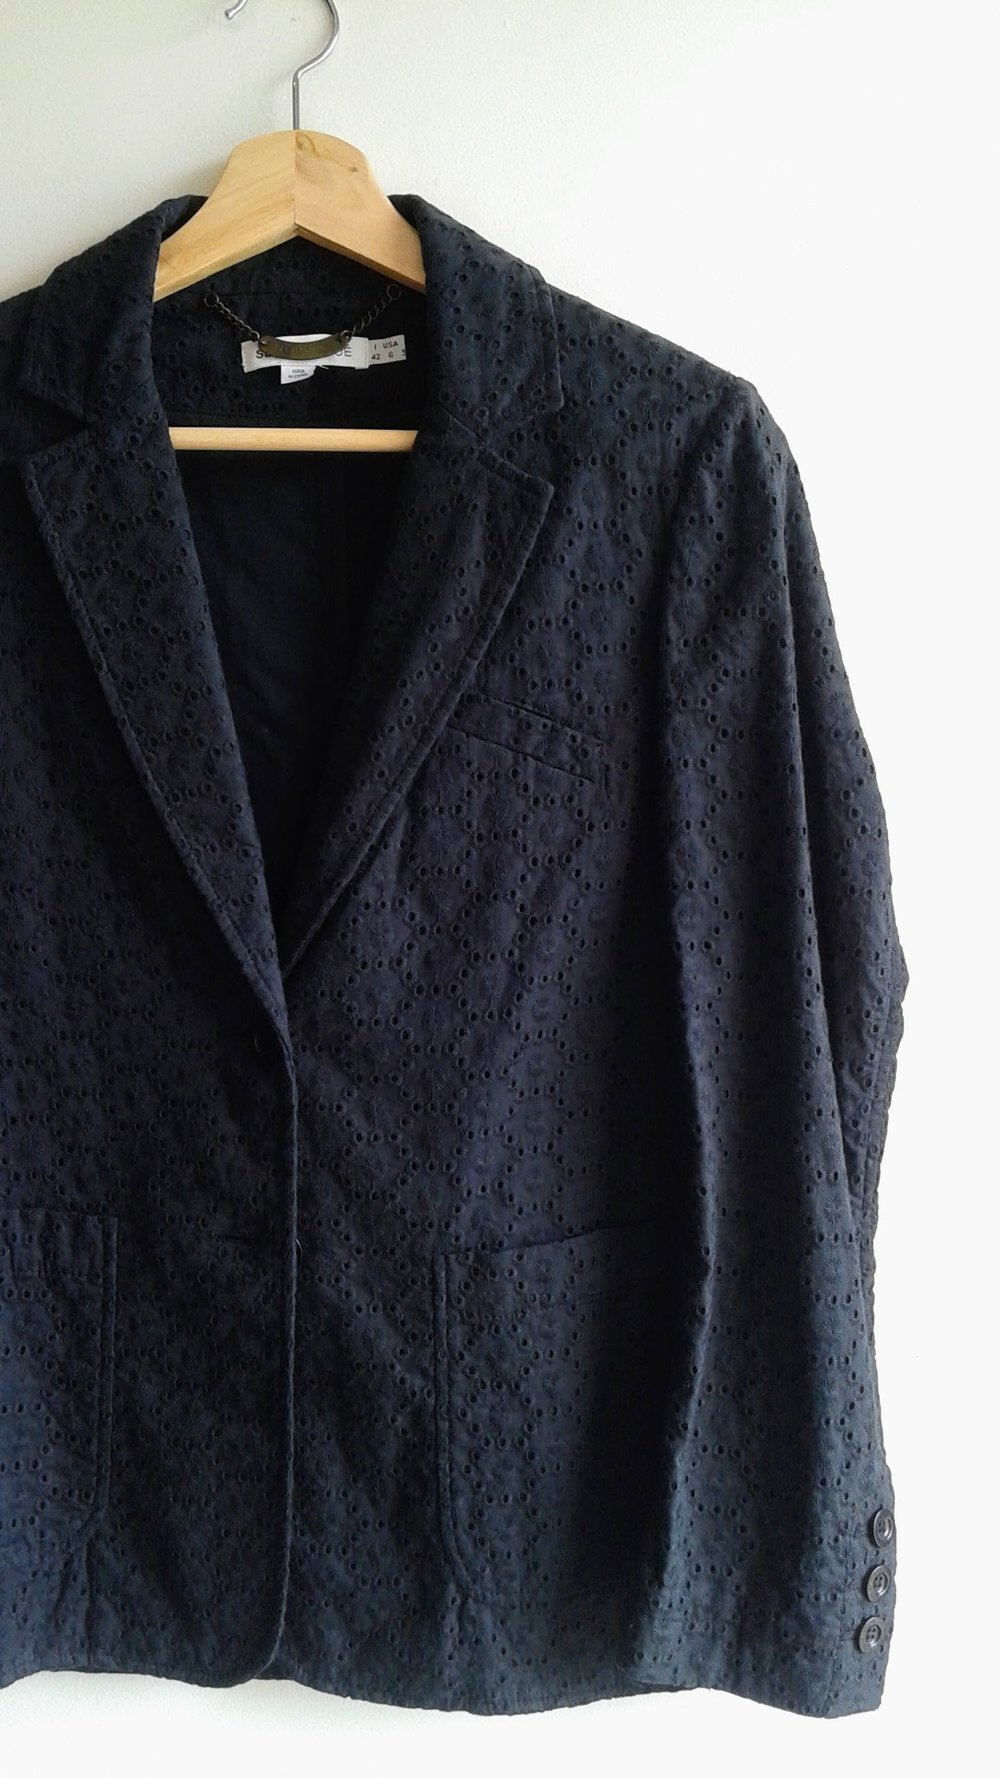 See by Chlo blazer; Size 6, $52